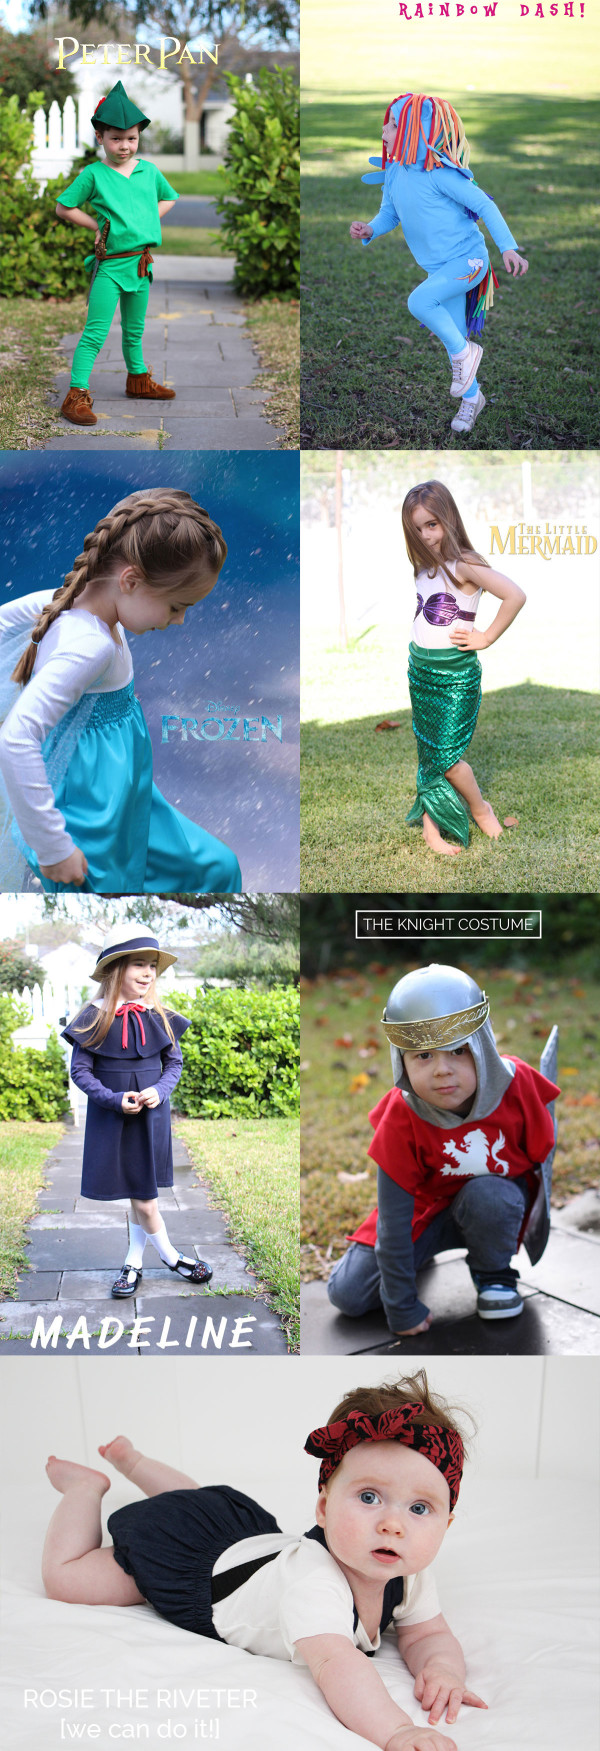 cbc5fa15 DIY Halloween costumes for kids by Megan Nielsen Patterns